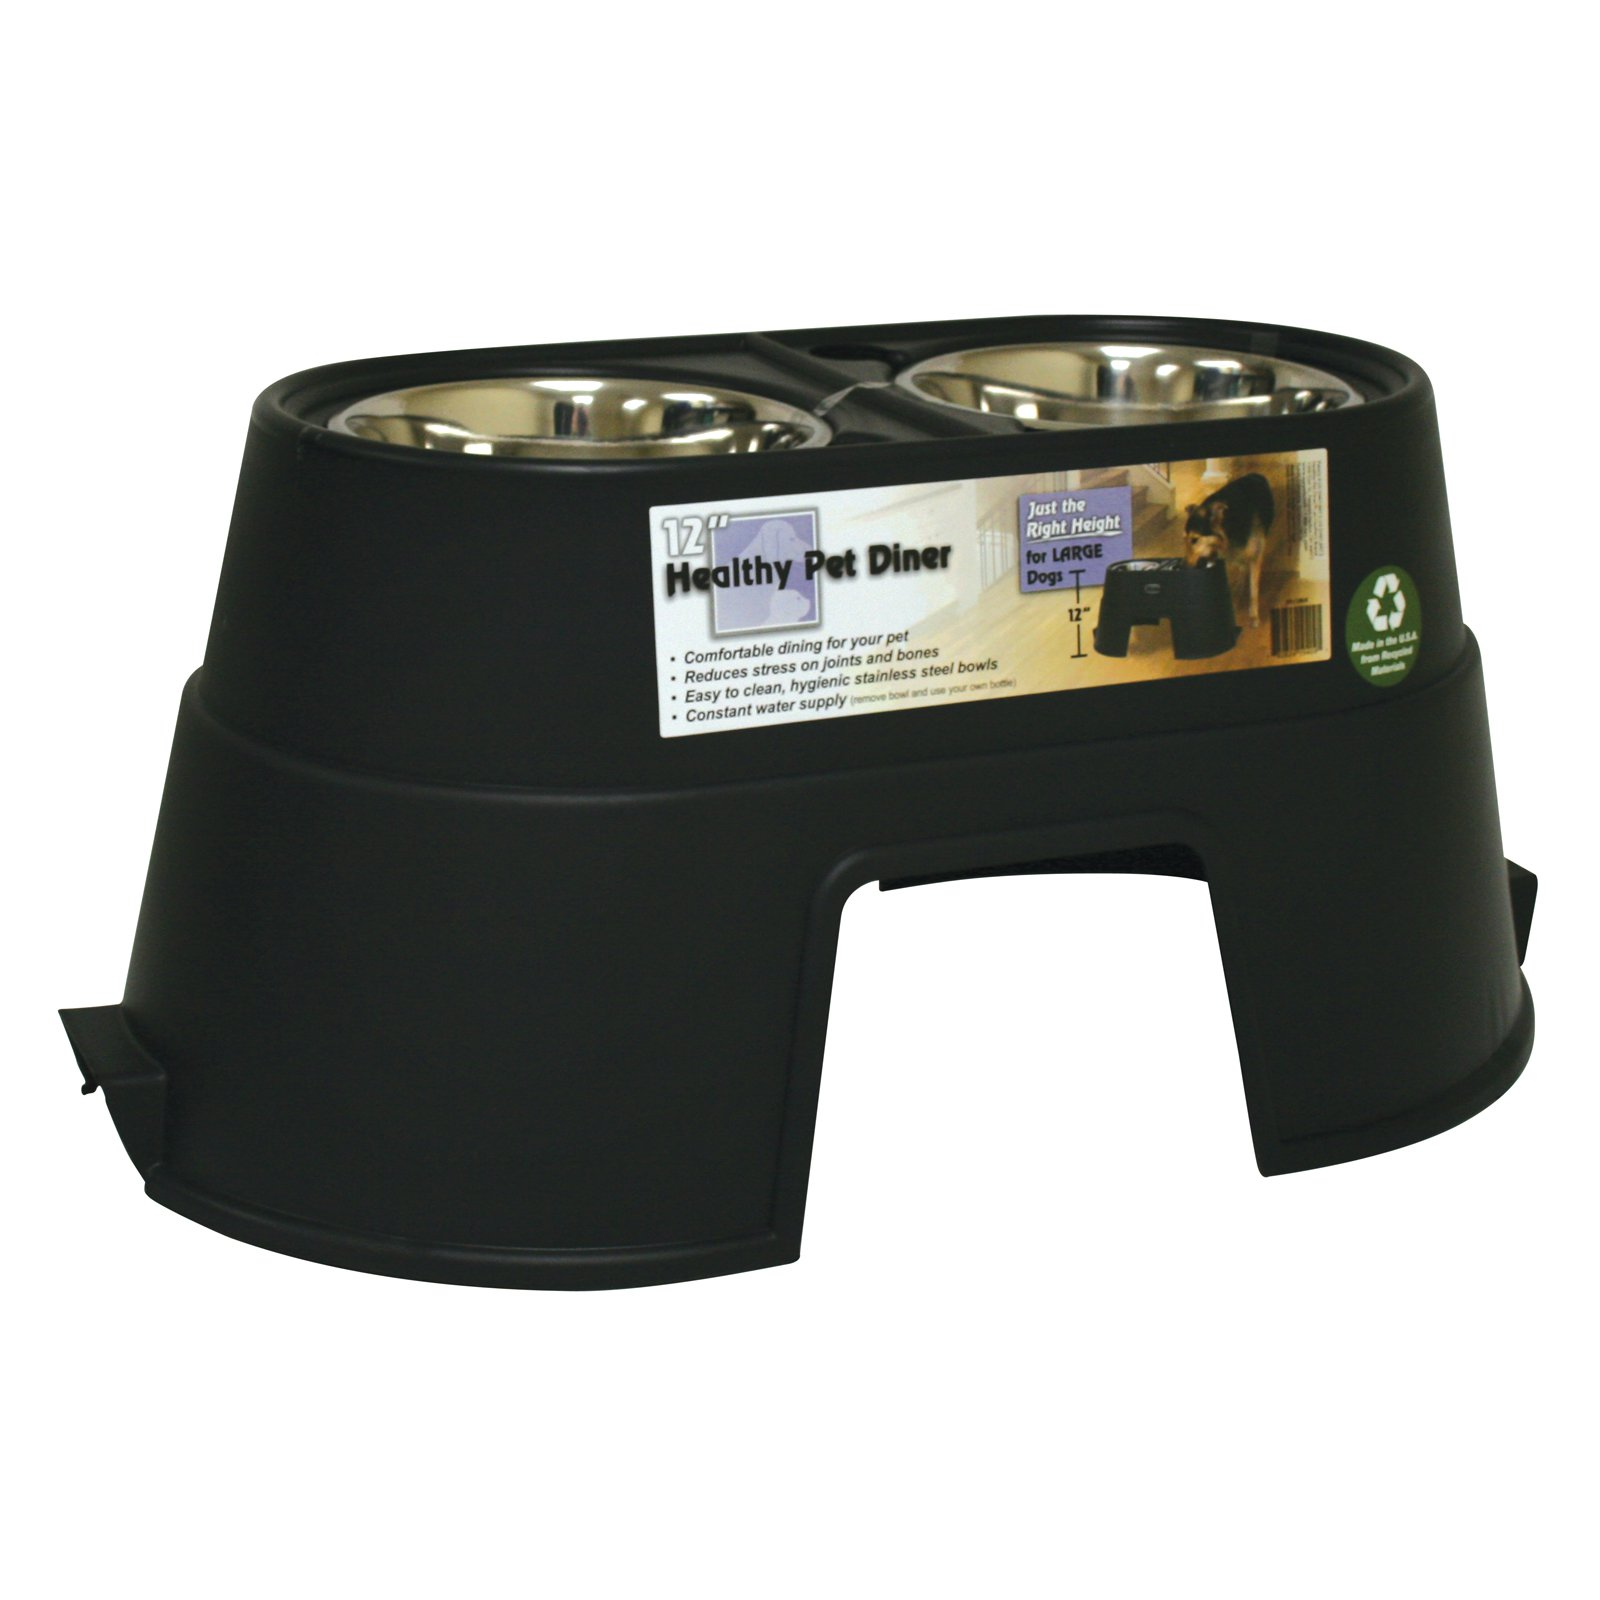 Healthy Pet Diner Double Dog Bowl Feeder - Recycled Black